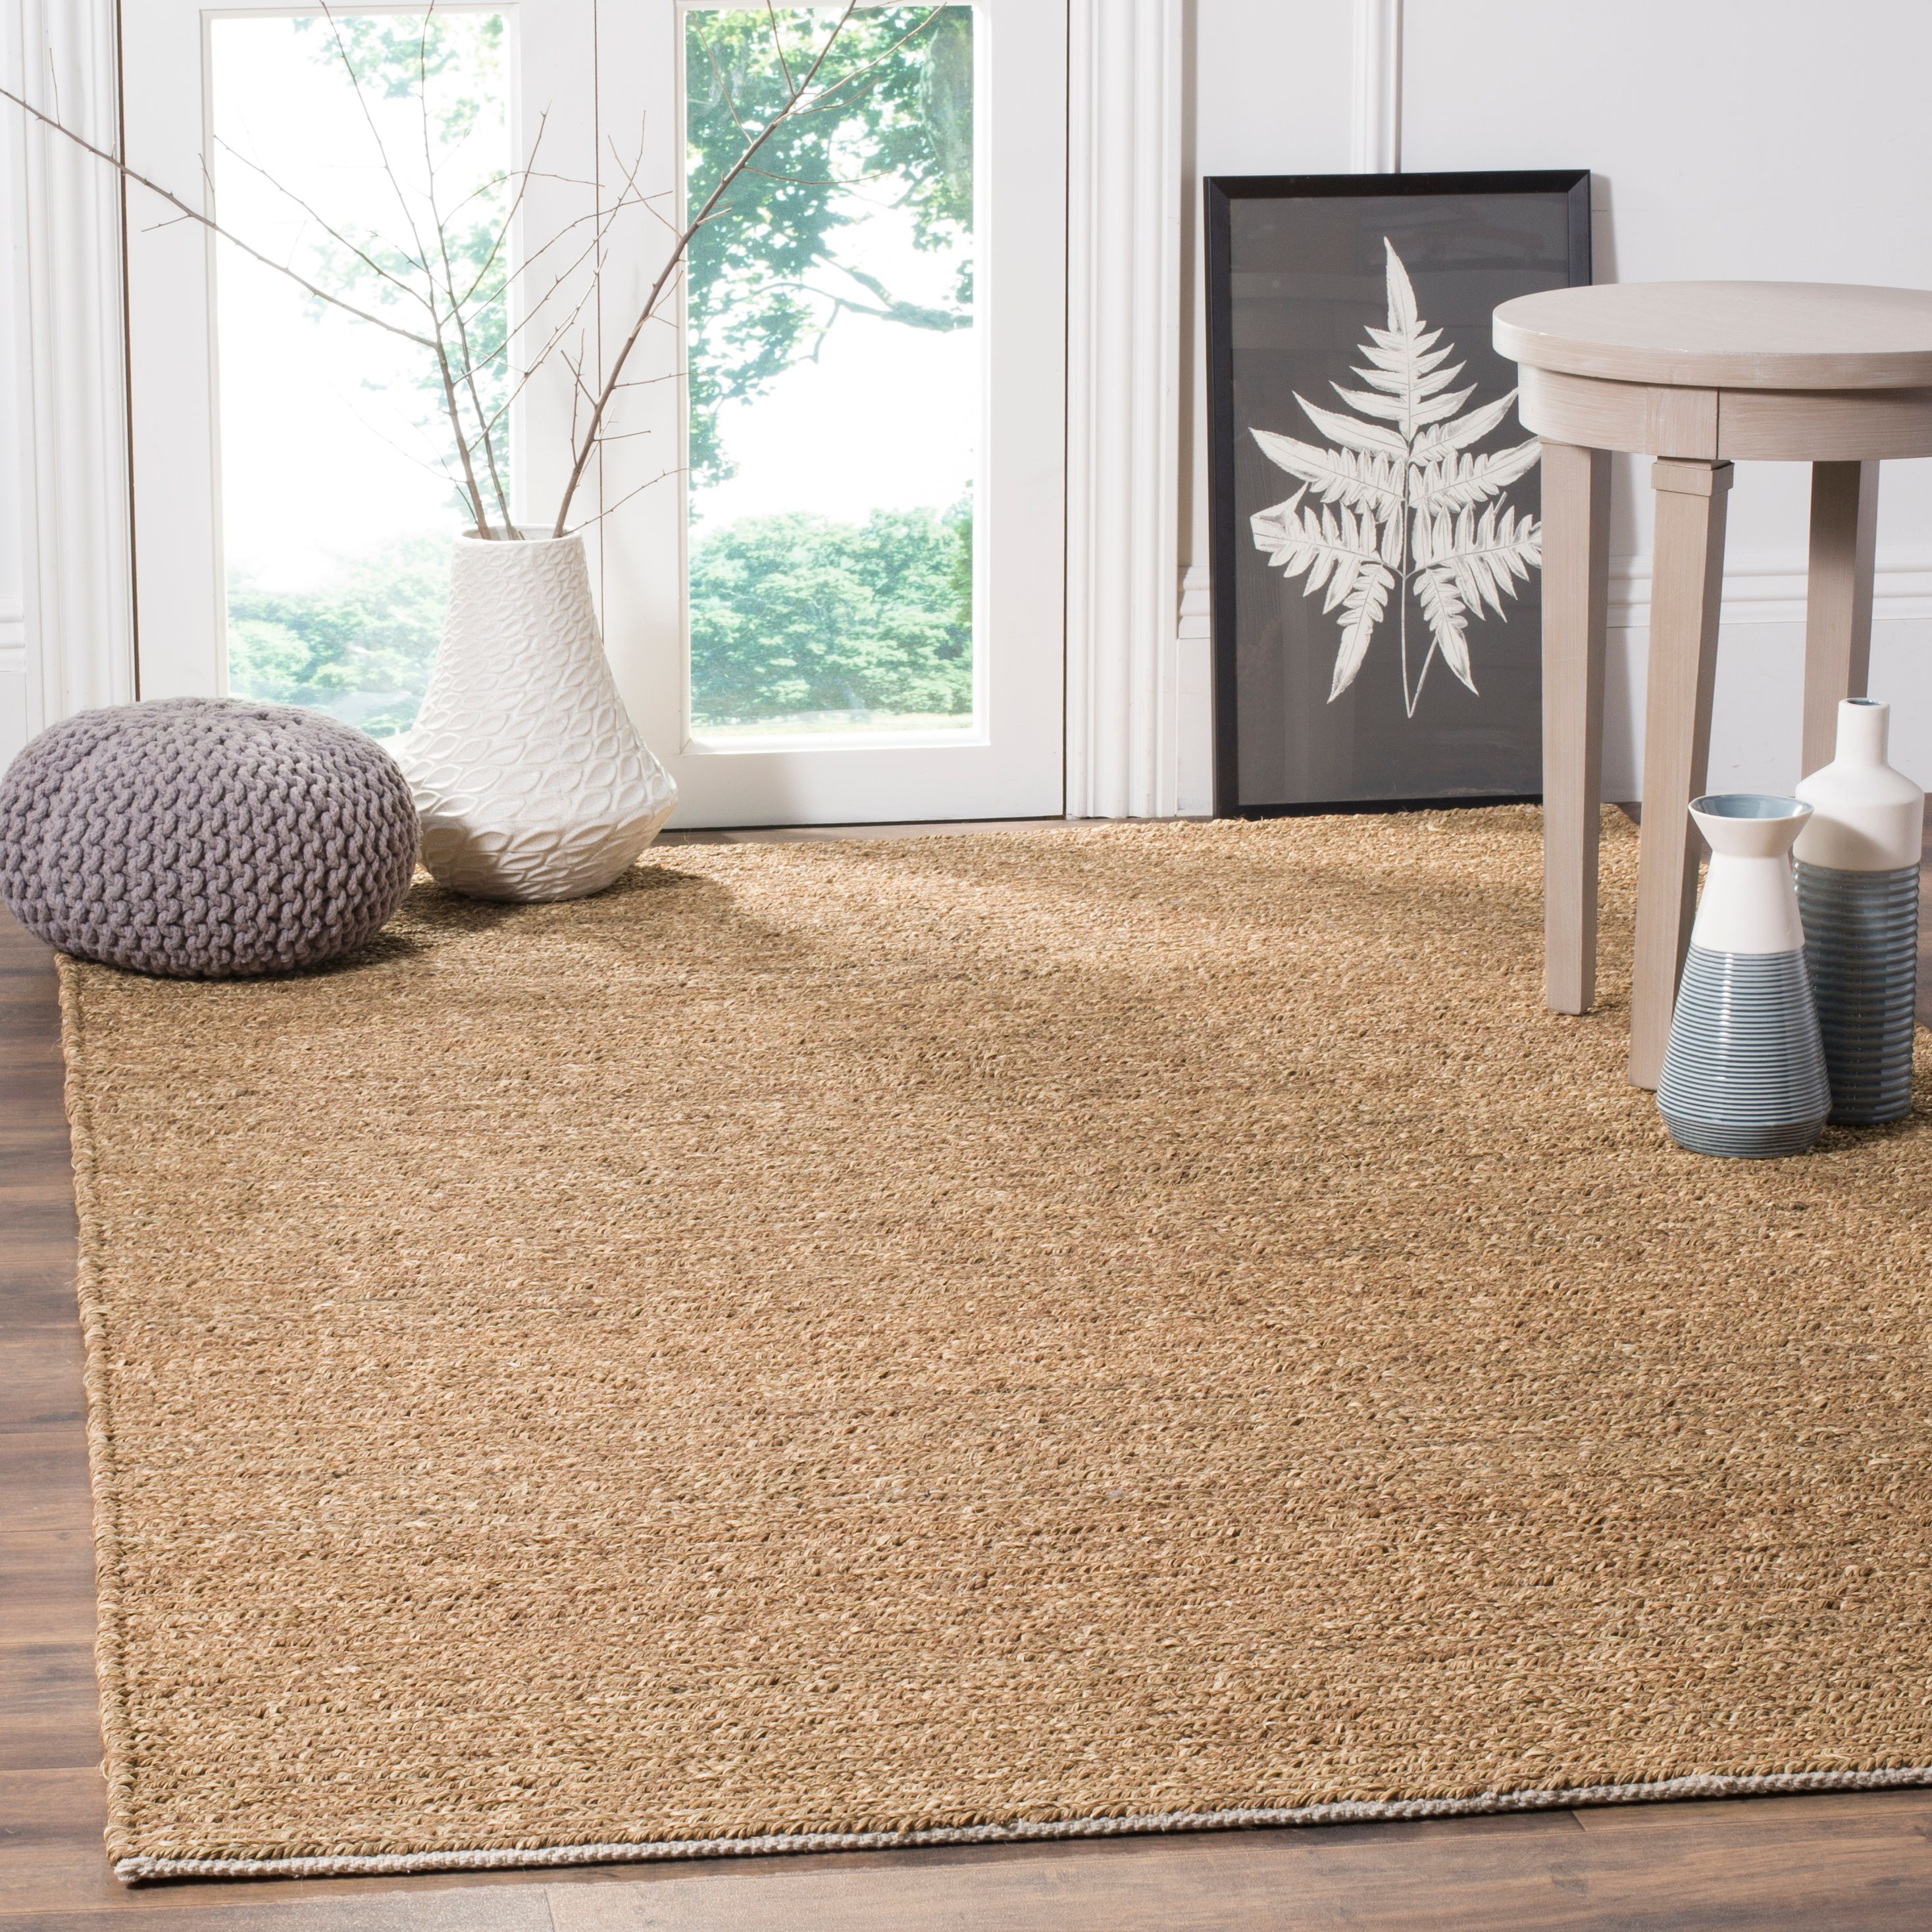 Safavieh Natural Fiber Raleigh Braided Area Rug